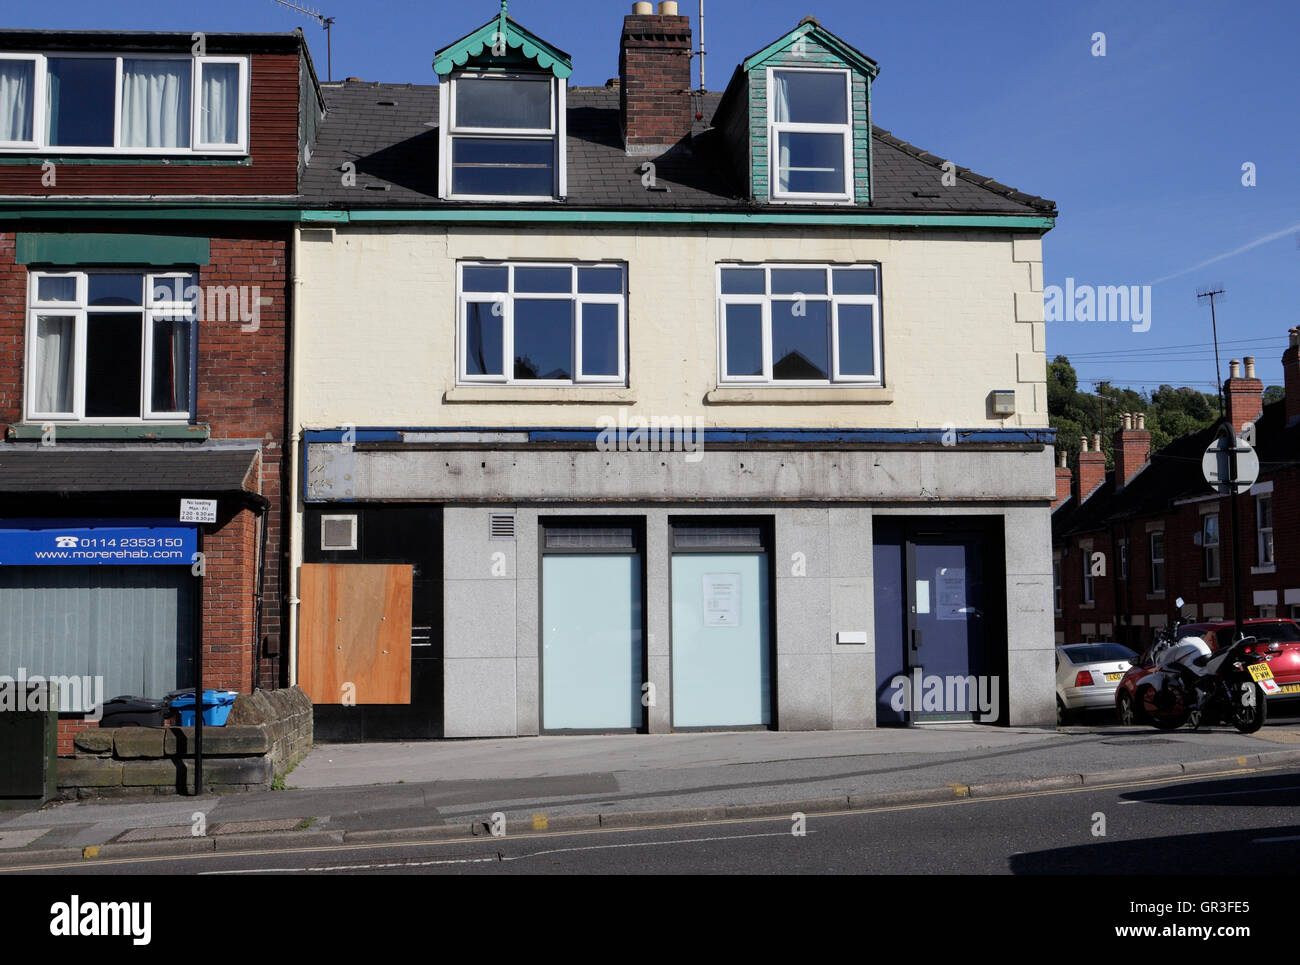 Lloyds bank Abbeydale road Sheffield now closed - Stock Image